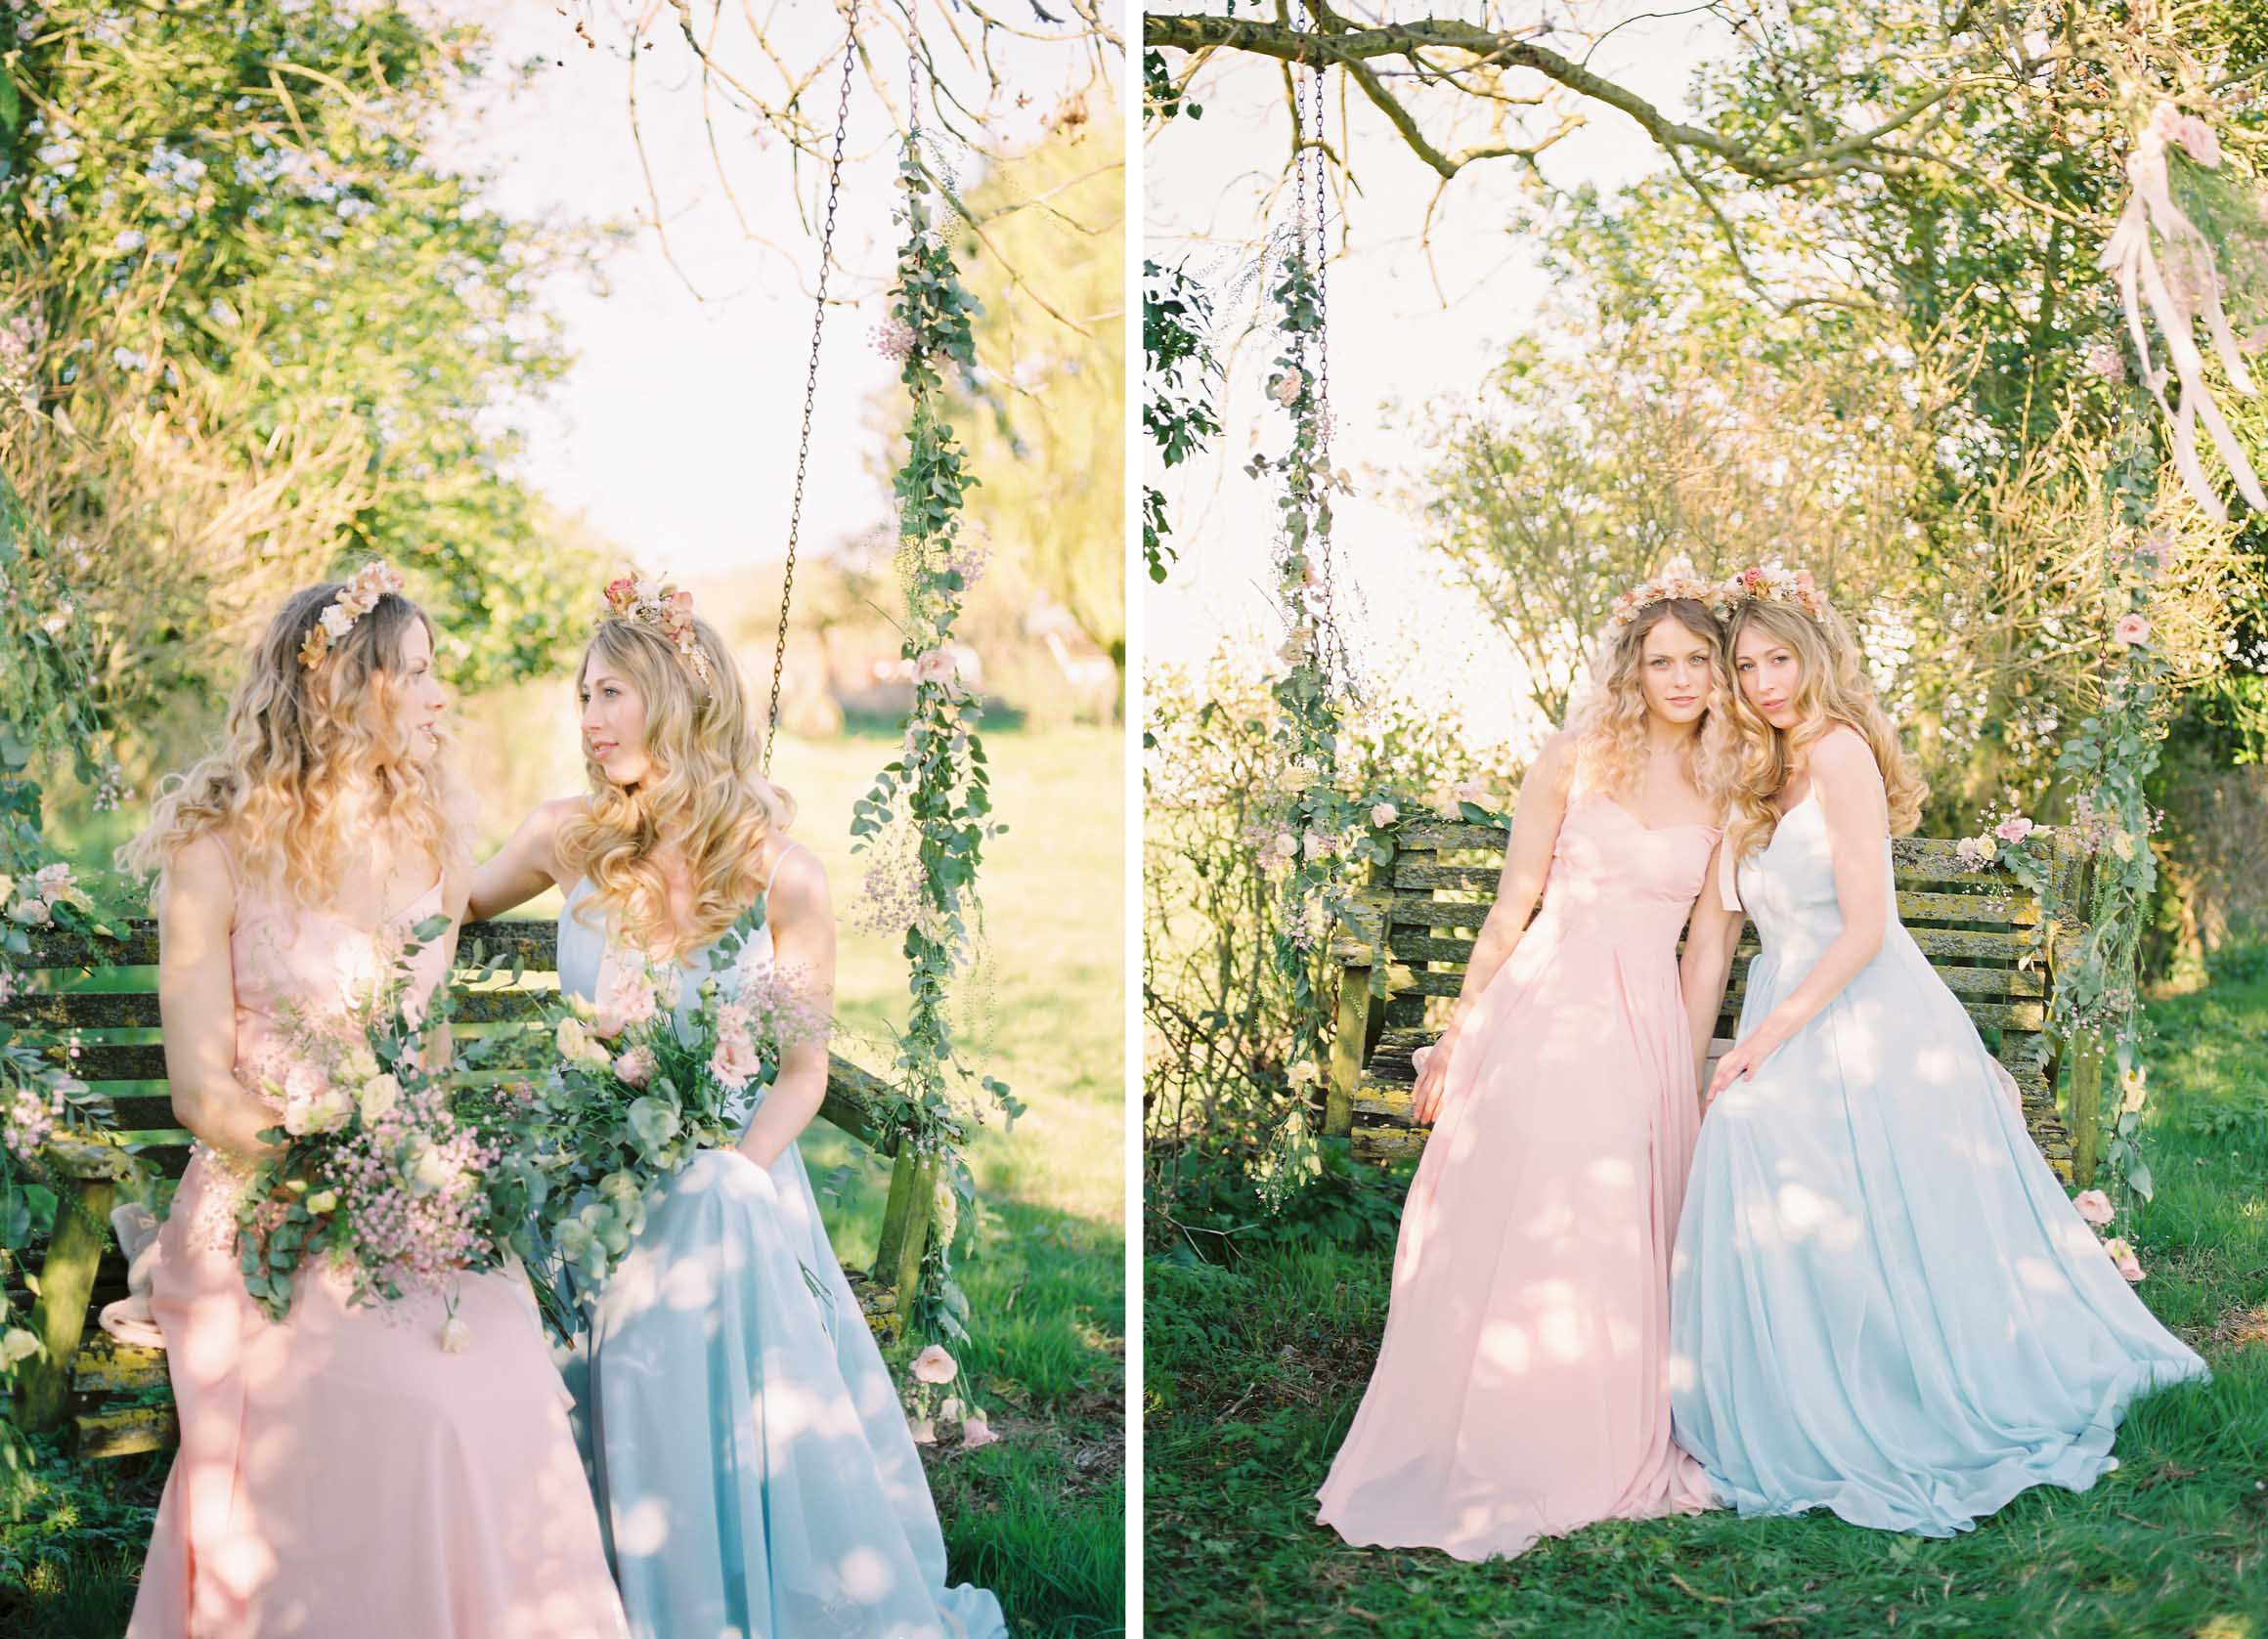 Amy O'Boyle Photography- Destination & UK Fine Art Film Wedding Photographer- TH&TH Bridesmaid Dress Shoot 2.jpg